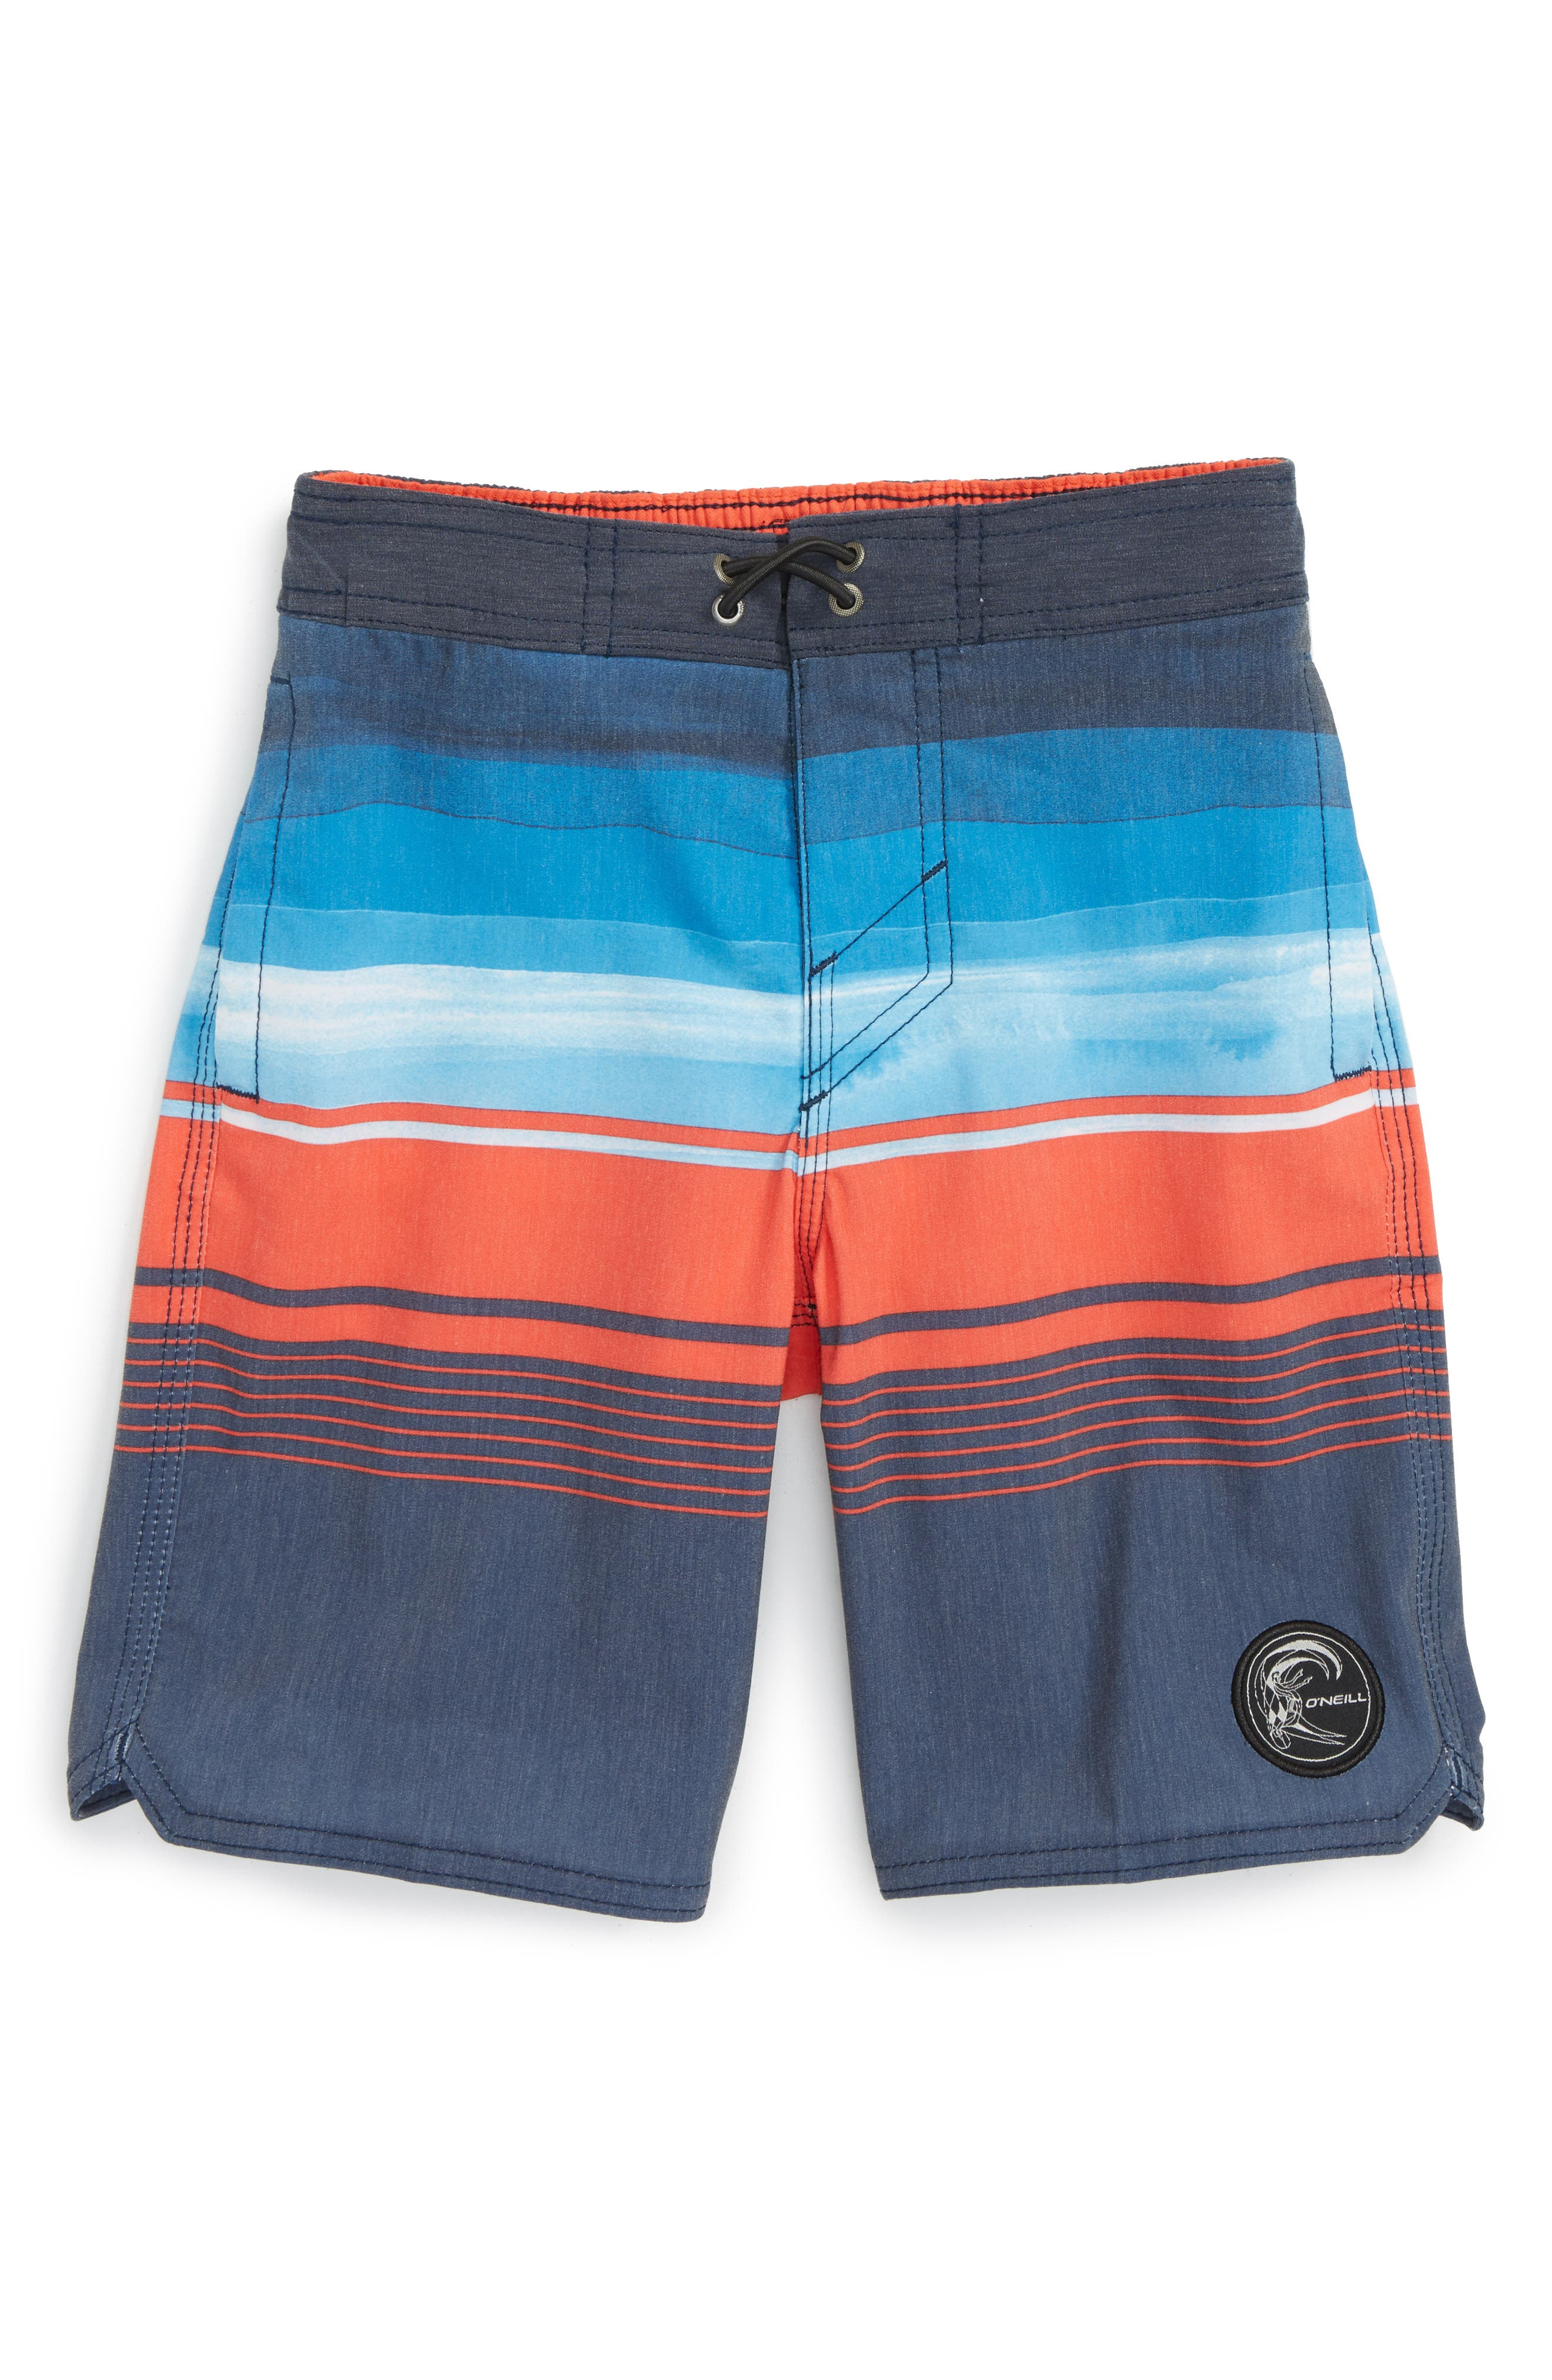 O'Neill Hyperfreak Source Board Shorts (Toddler Boys & Little Boys)